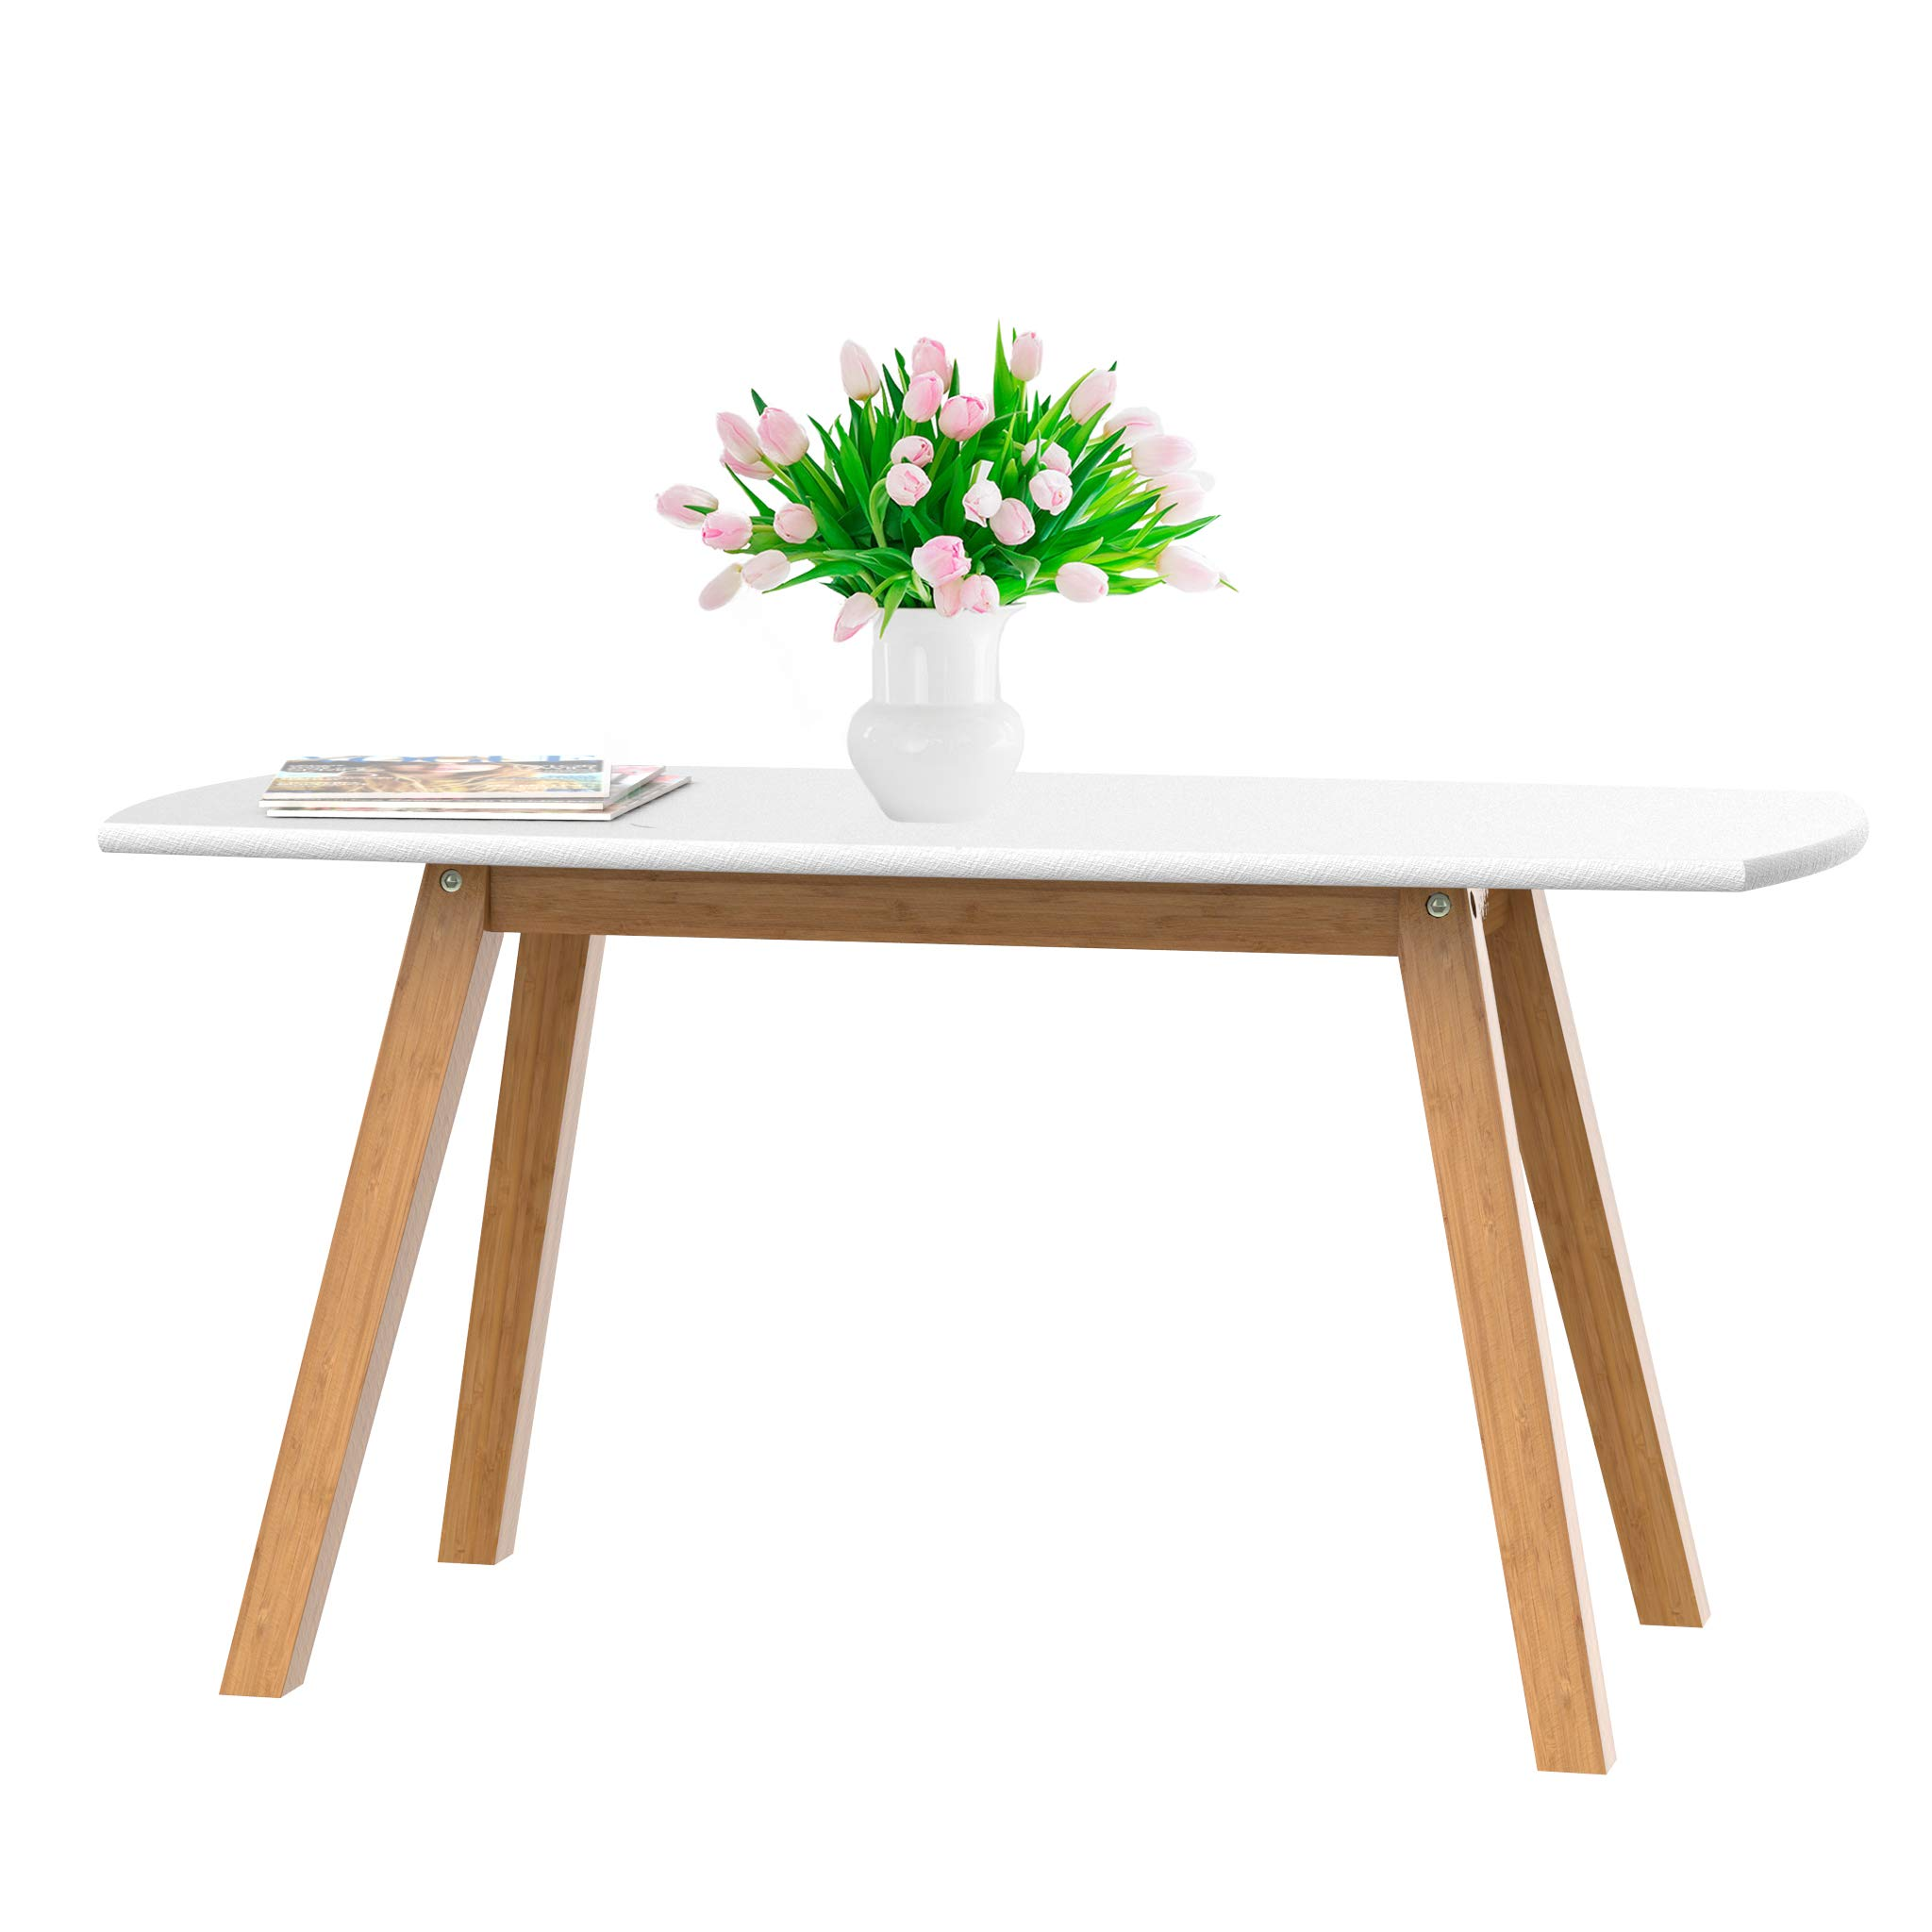 bonVIVO Coffee Table Franz, Designer Coffee Tables for Living Room and Modern Coffee Table That can be Used as Side Table, White and Wooden Coffee Table with Bamboo Frame by bonVIVO